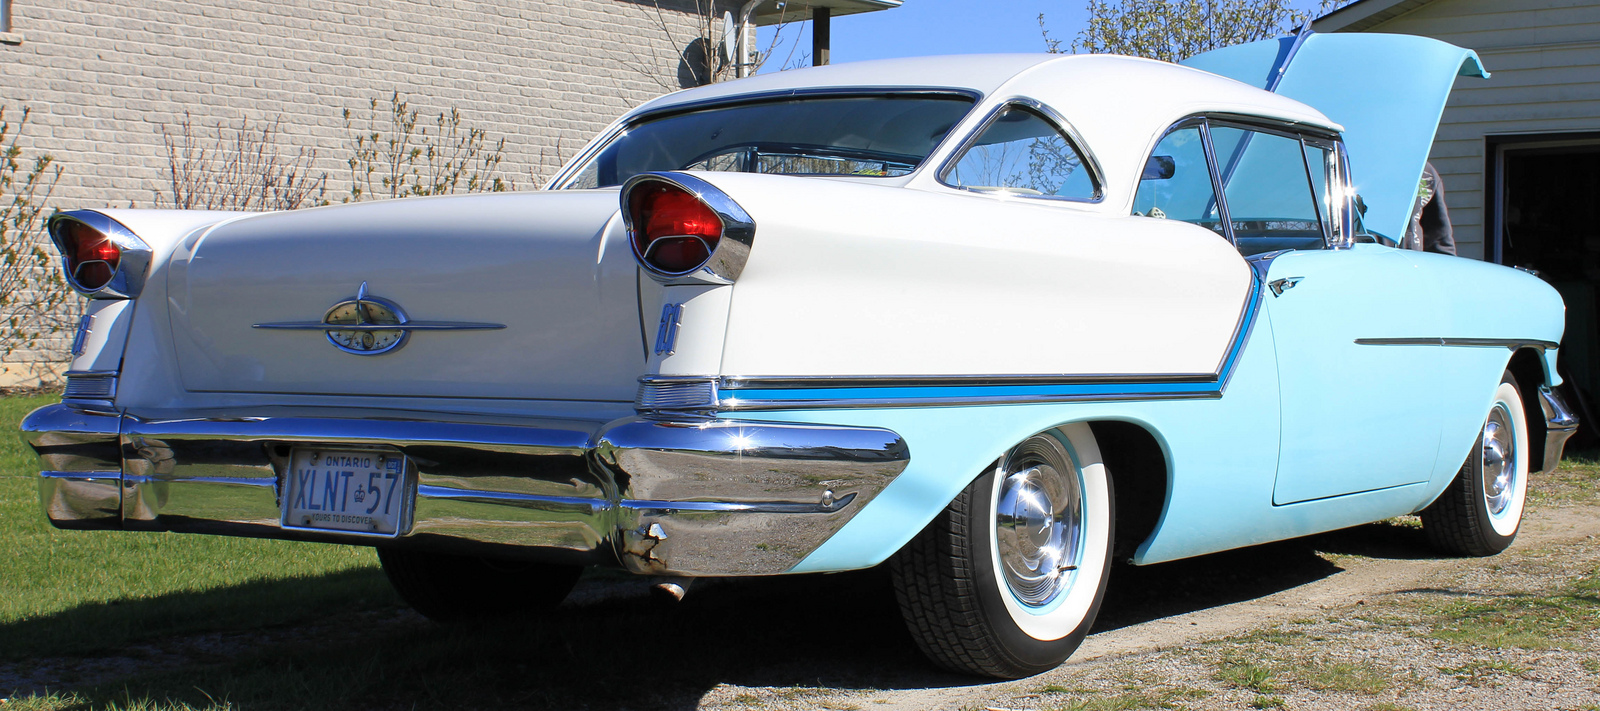 57 Oldsmobile Holiday 88 Coupe | Flickr - Photo Sharing!